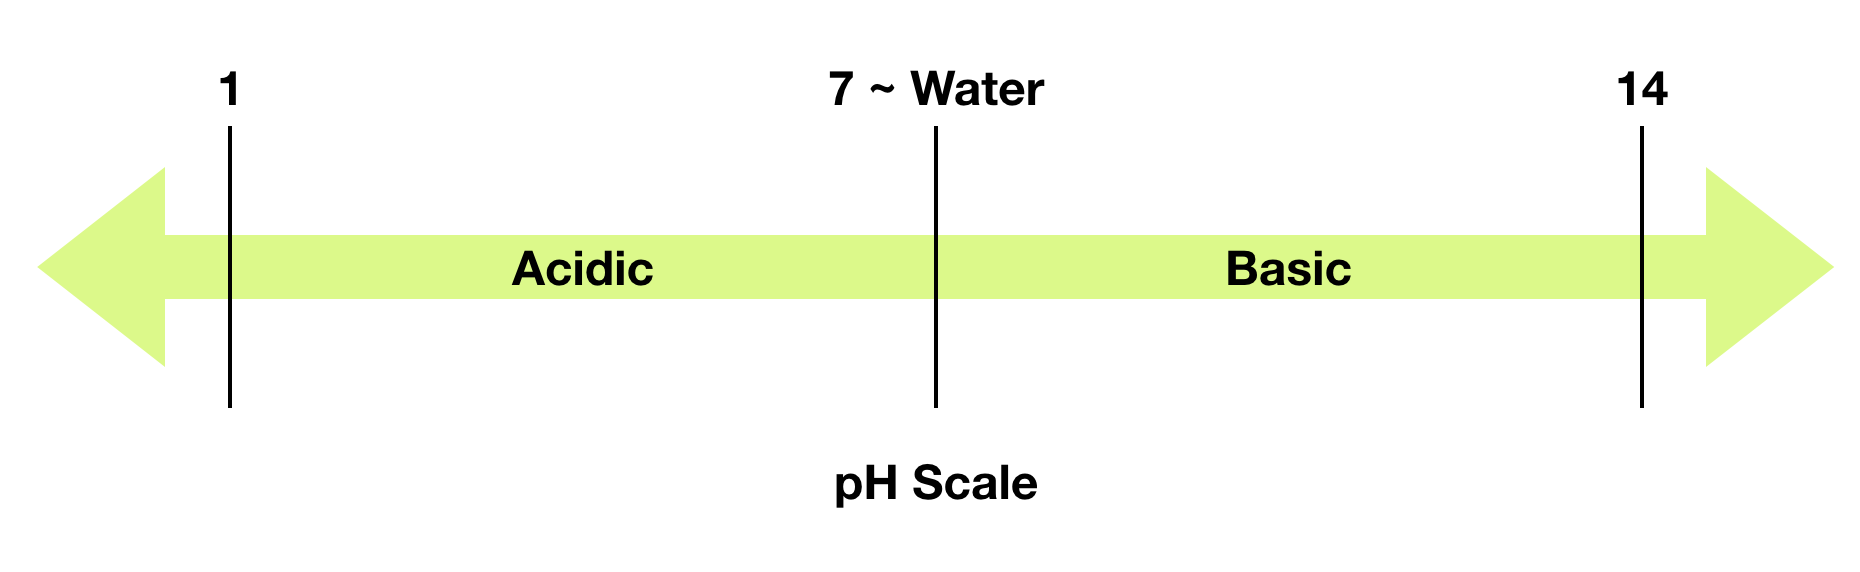 A pH scale with water in the center, with a pH of 7.